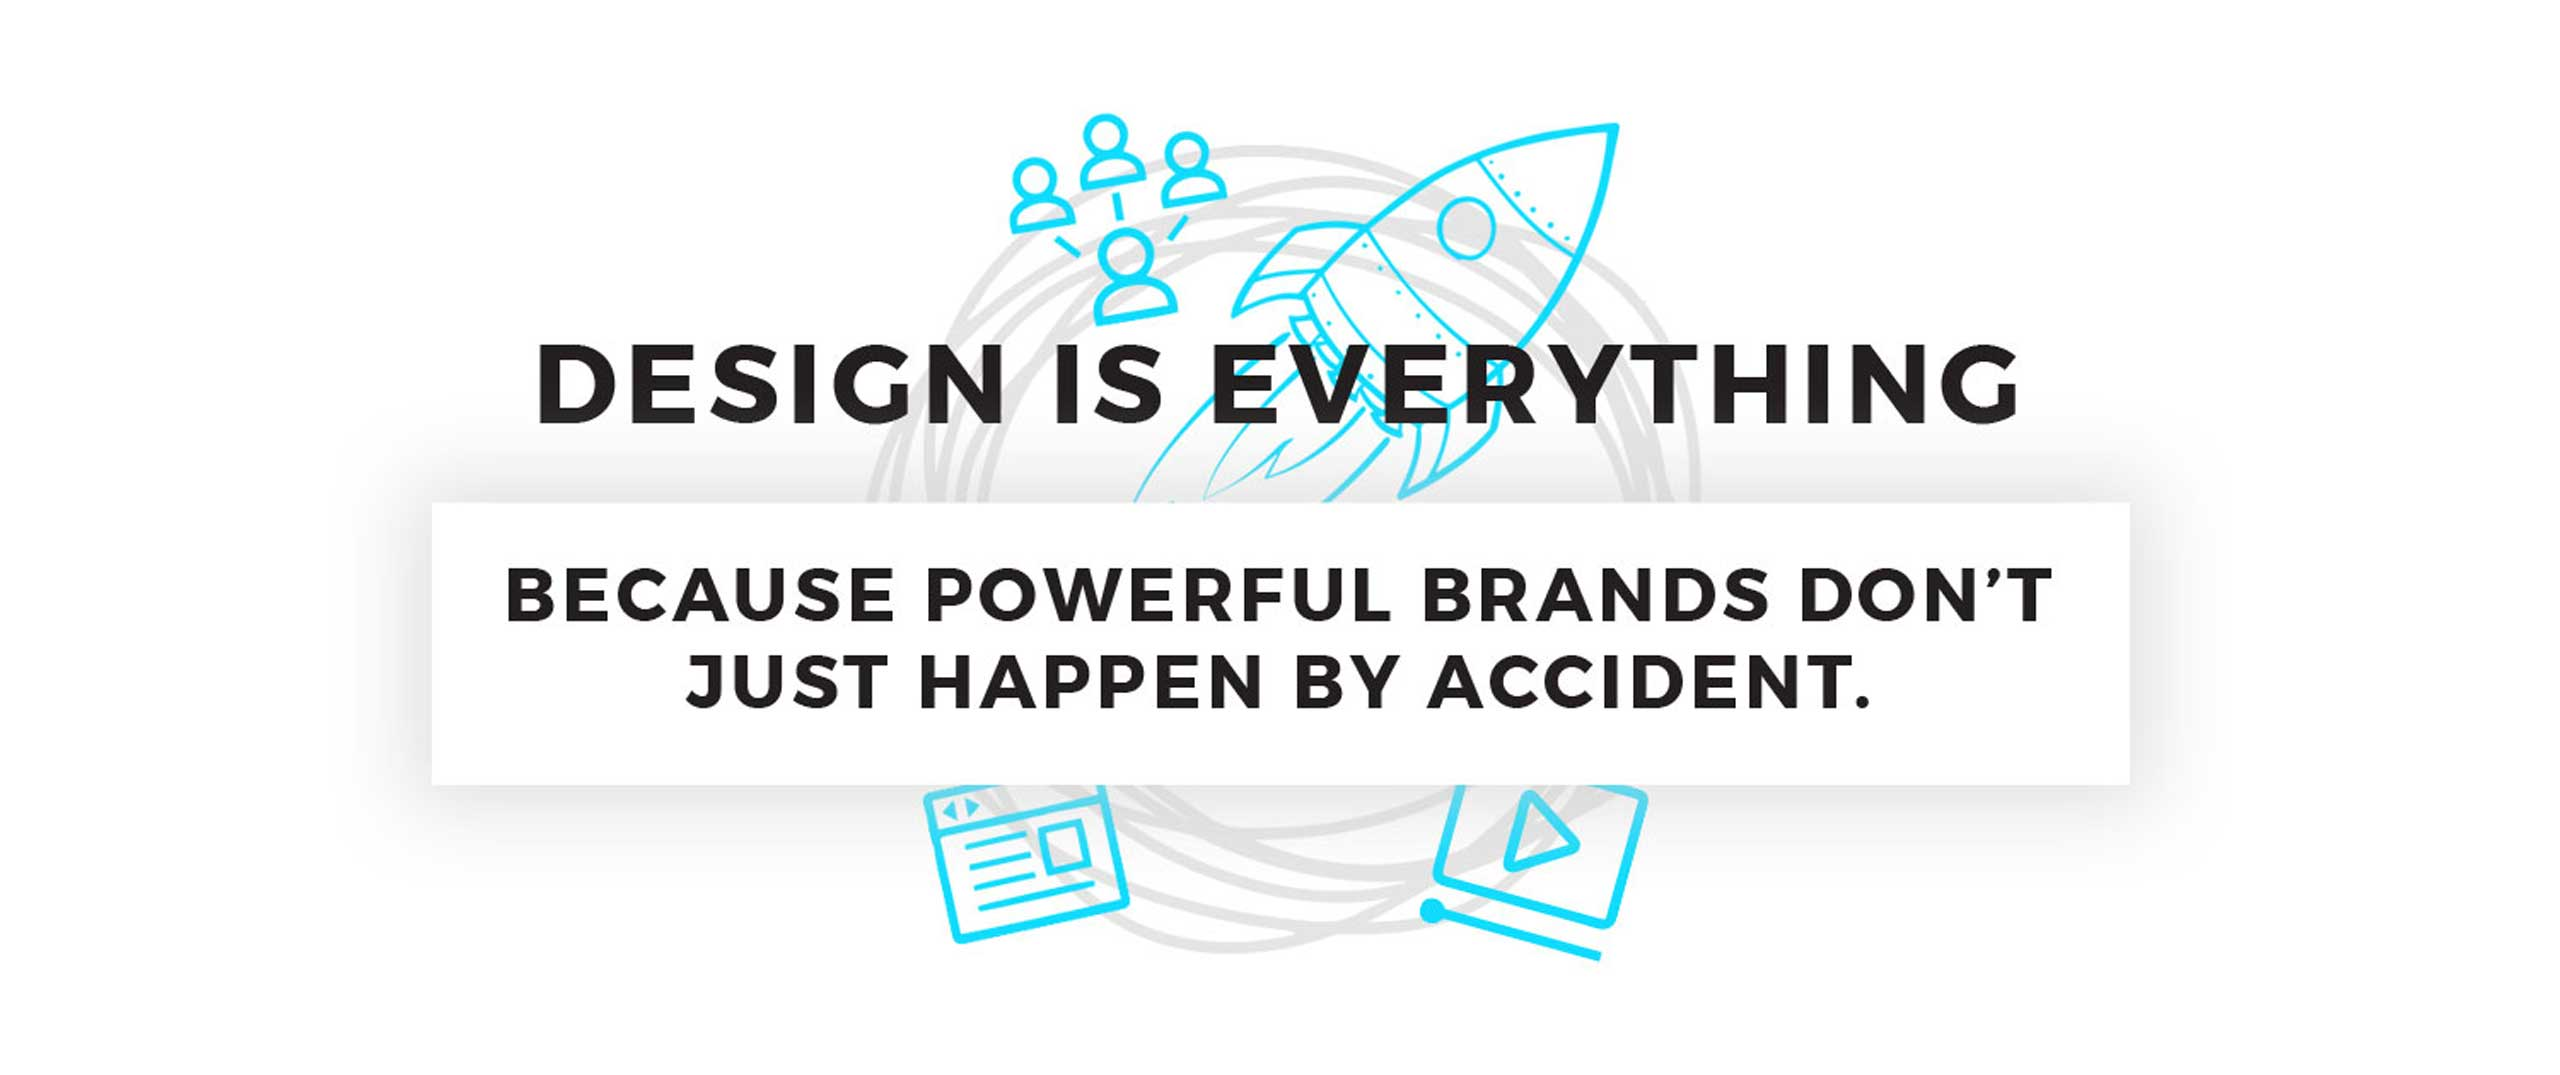 Design is Everything. BECAUSE POWERFUL BRANDS DON'T JUST HAPPEN BY ACCIDENT.